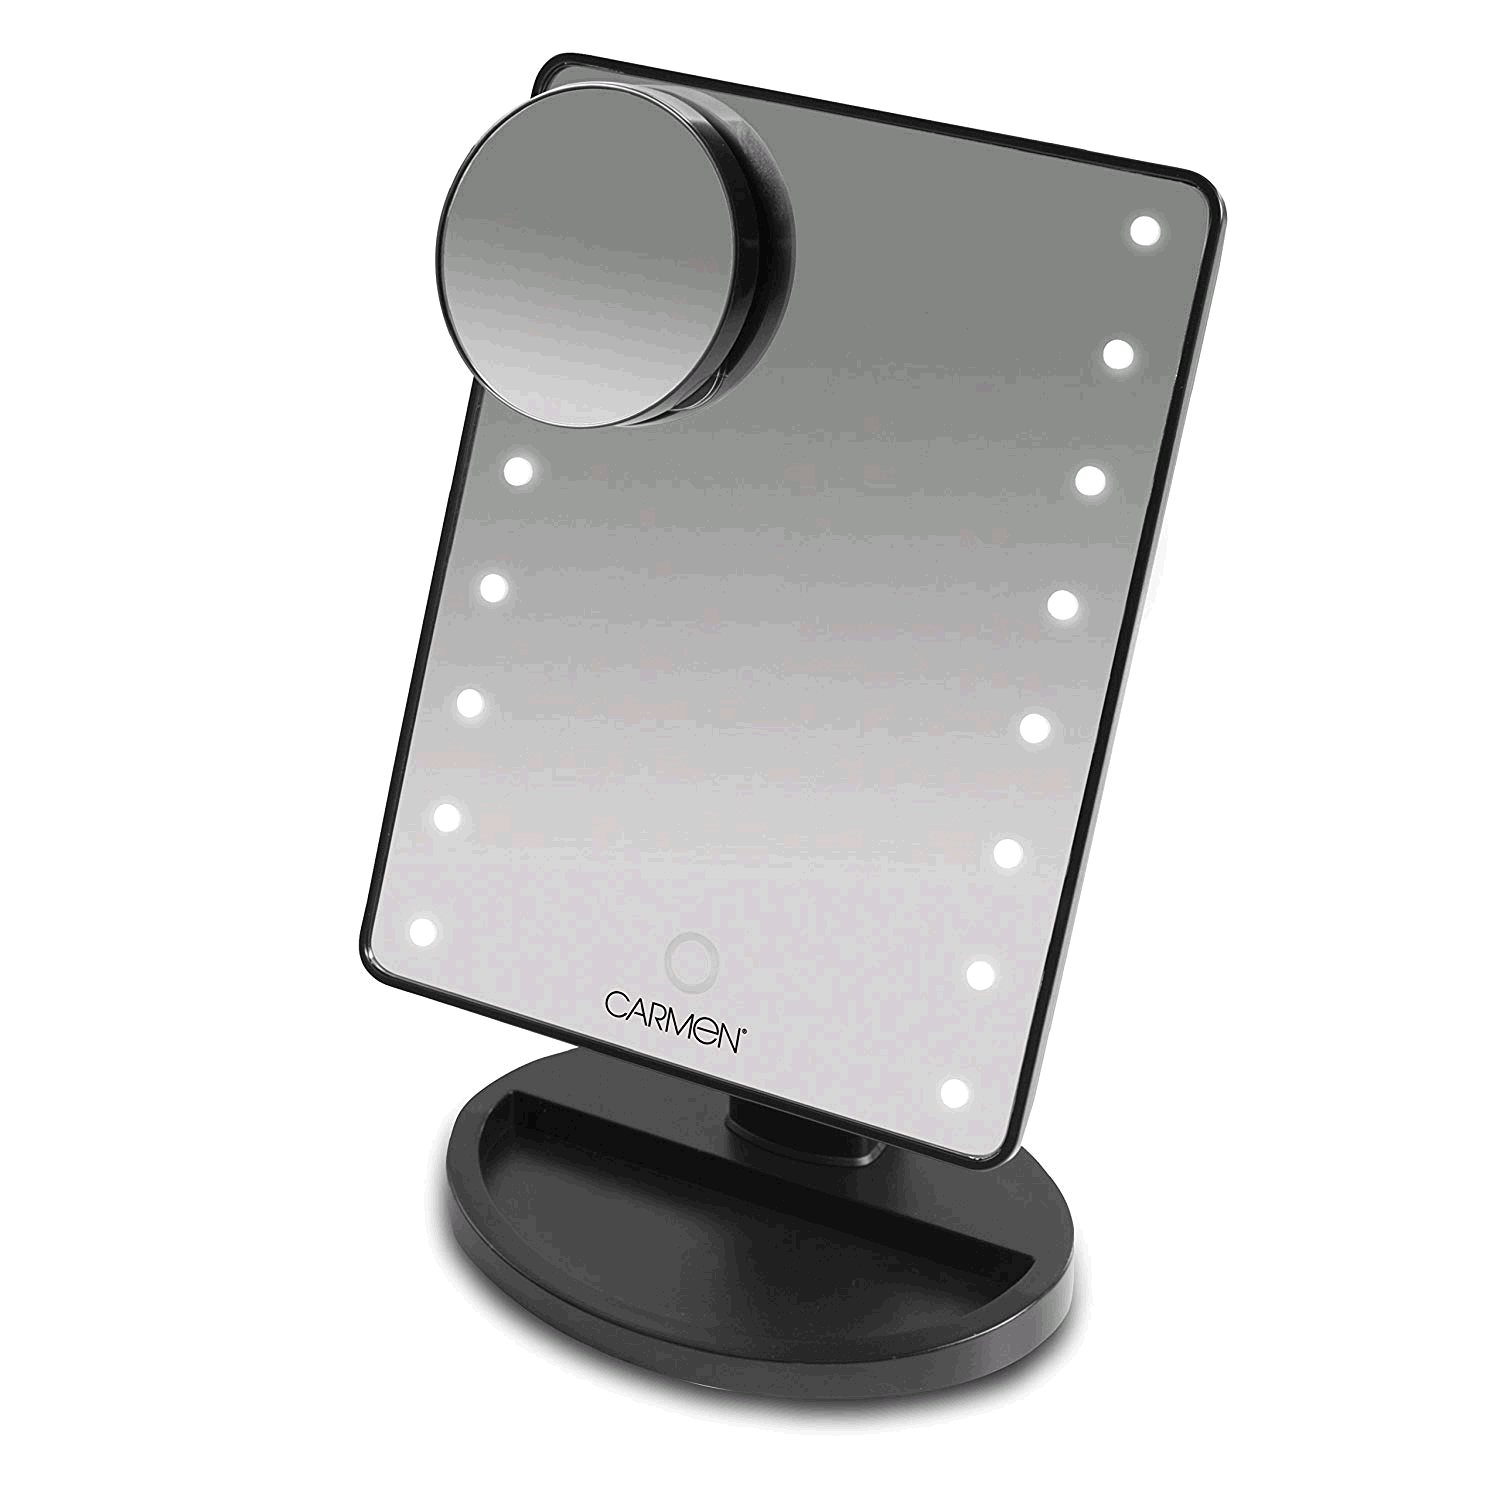 Carmen LED Illuminated Mirror Smart Touch Screen & Rotating Neck